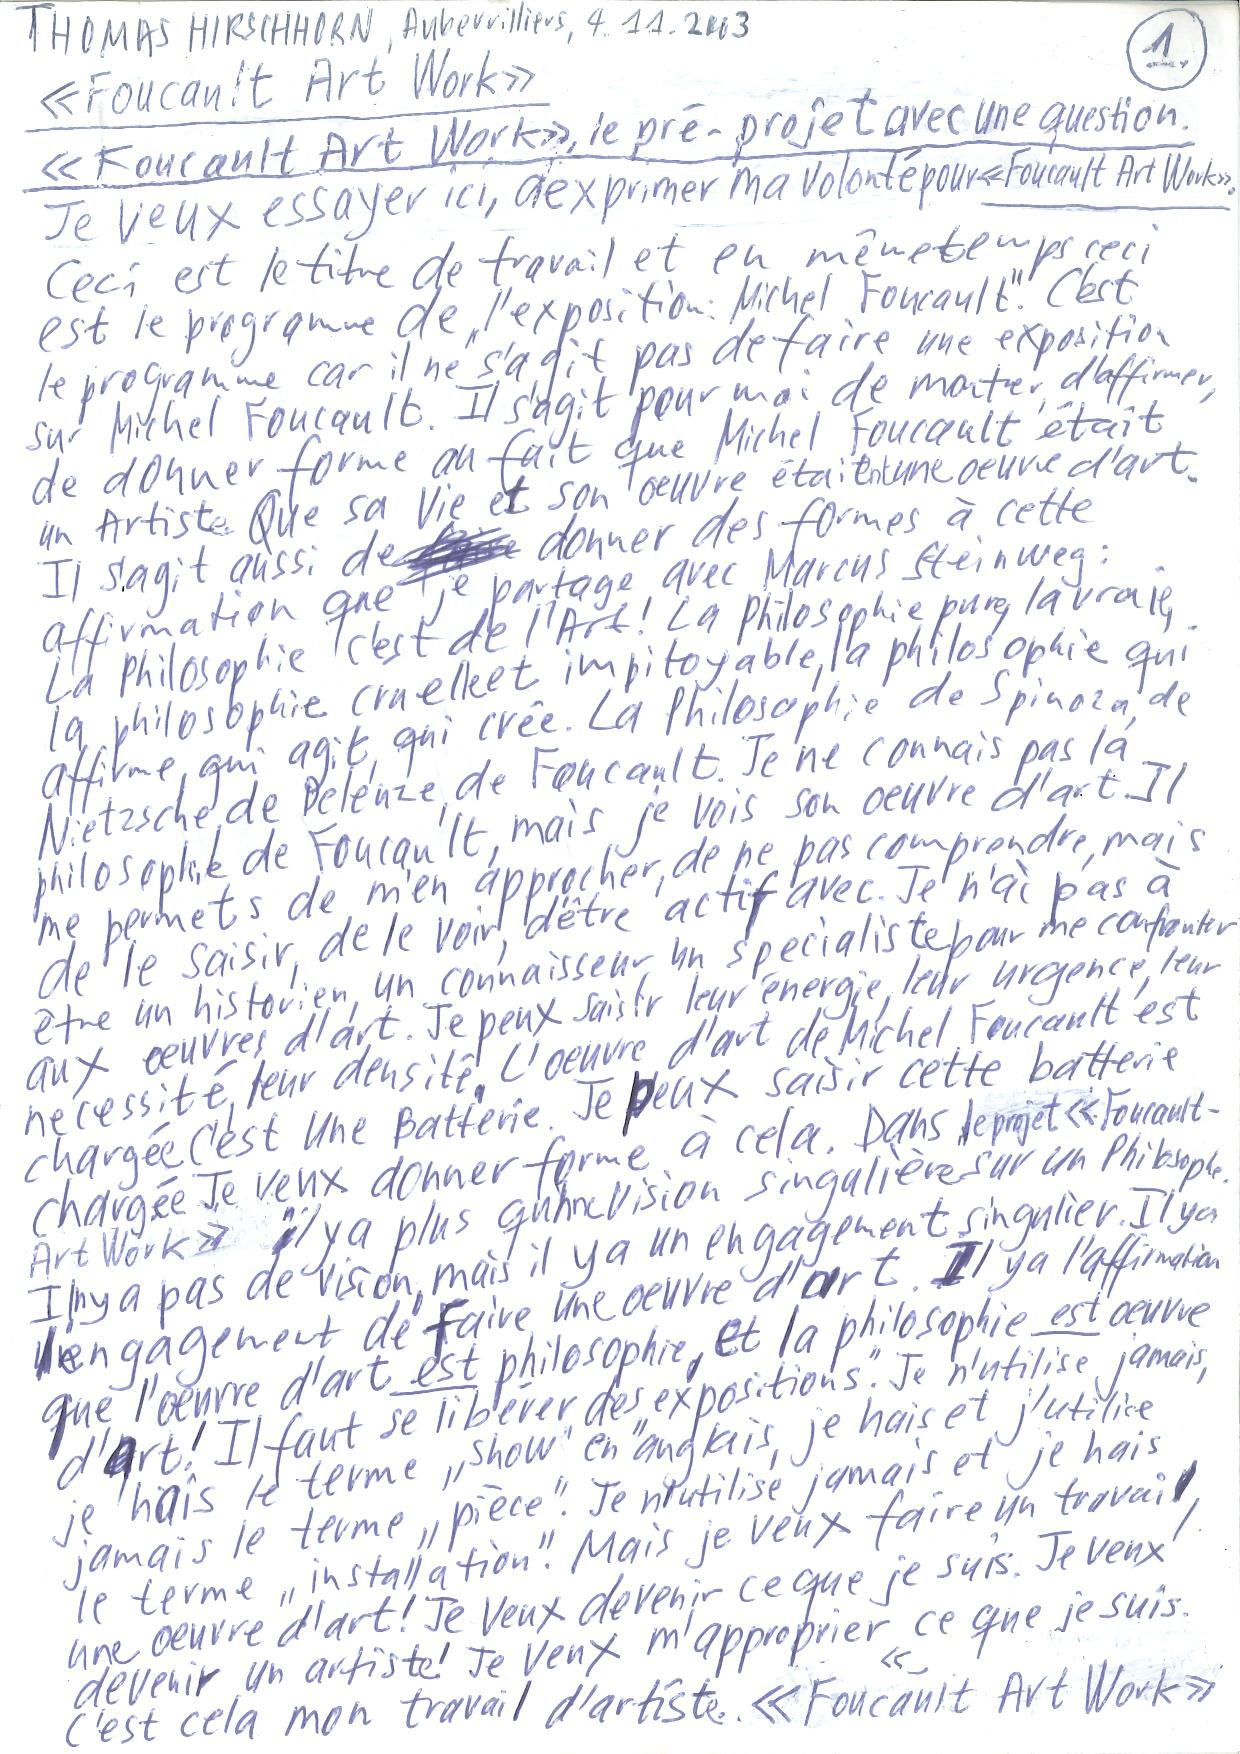 24H-Foucault_Note d'intention_2004 (2)